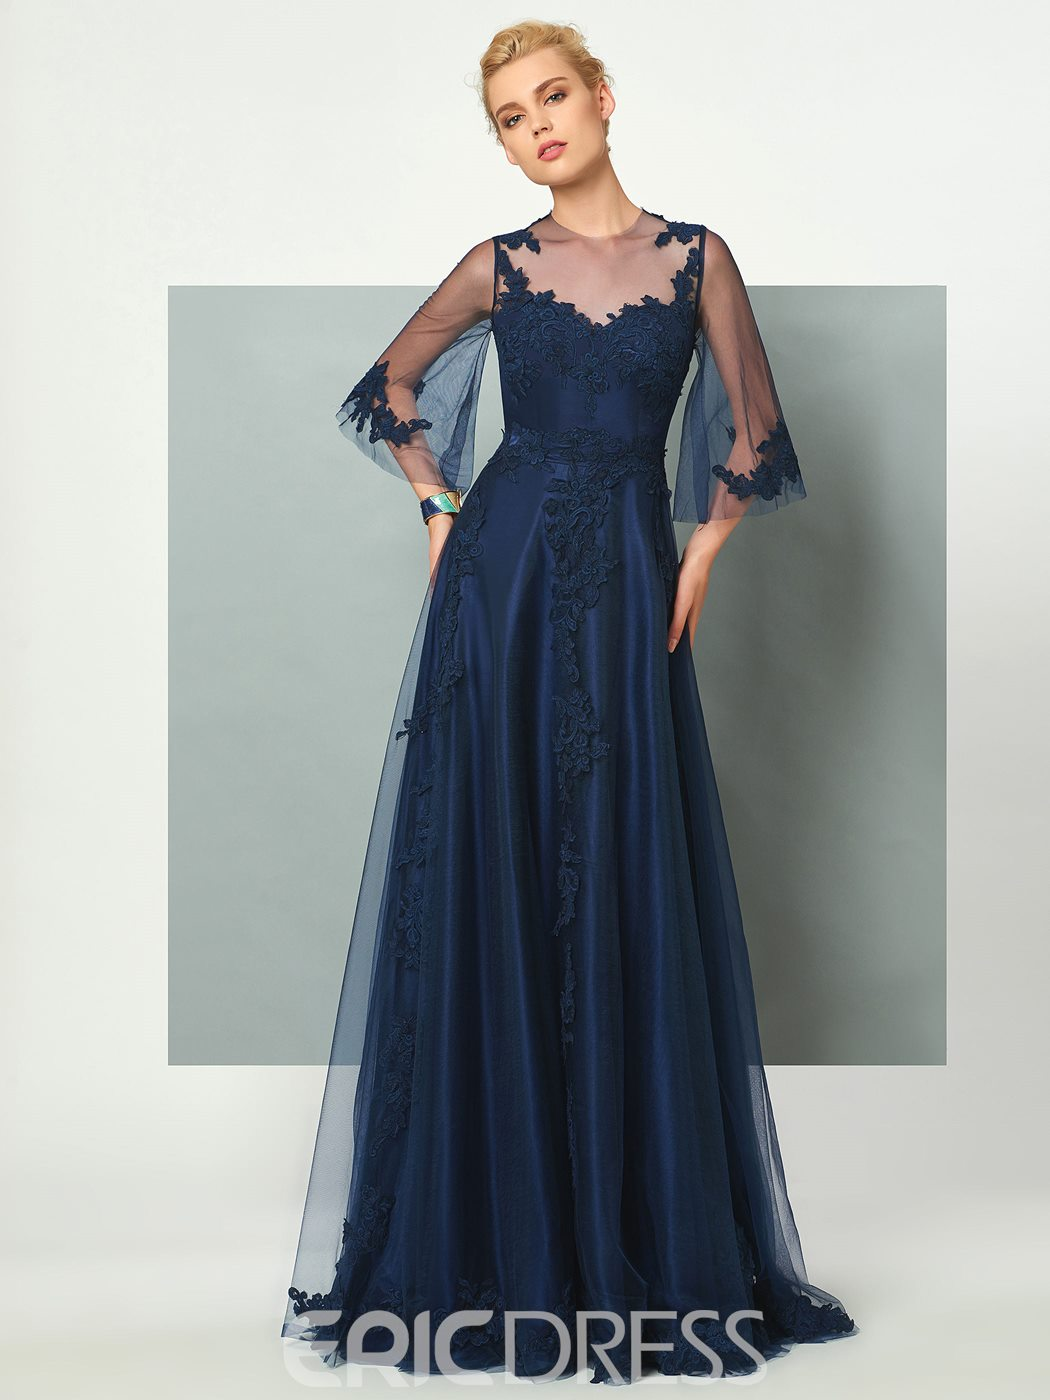 Ericdress A Line Scoop Neck 3/4 Sleeve Applique Tulle Floor Length Evening Dress